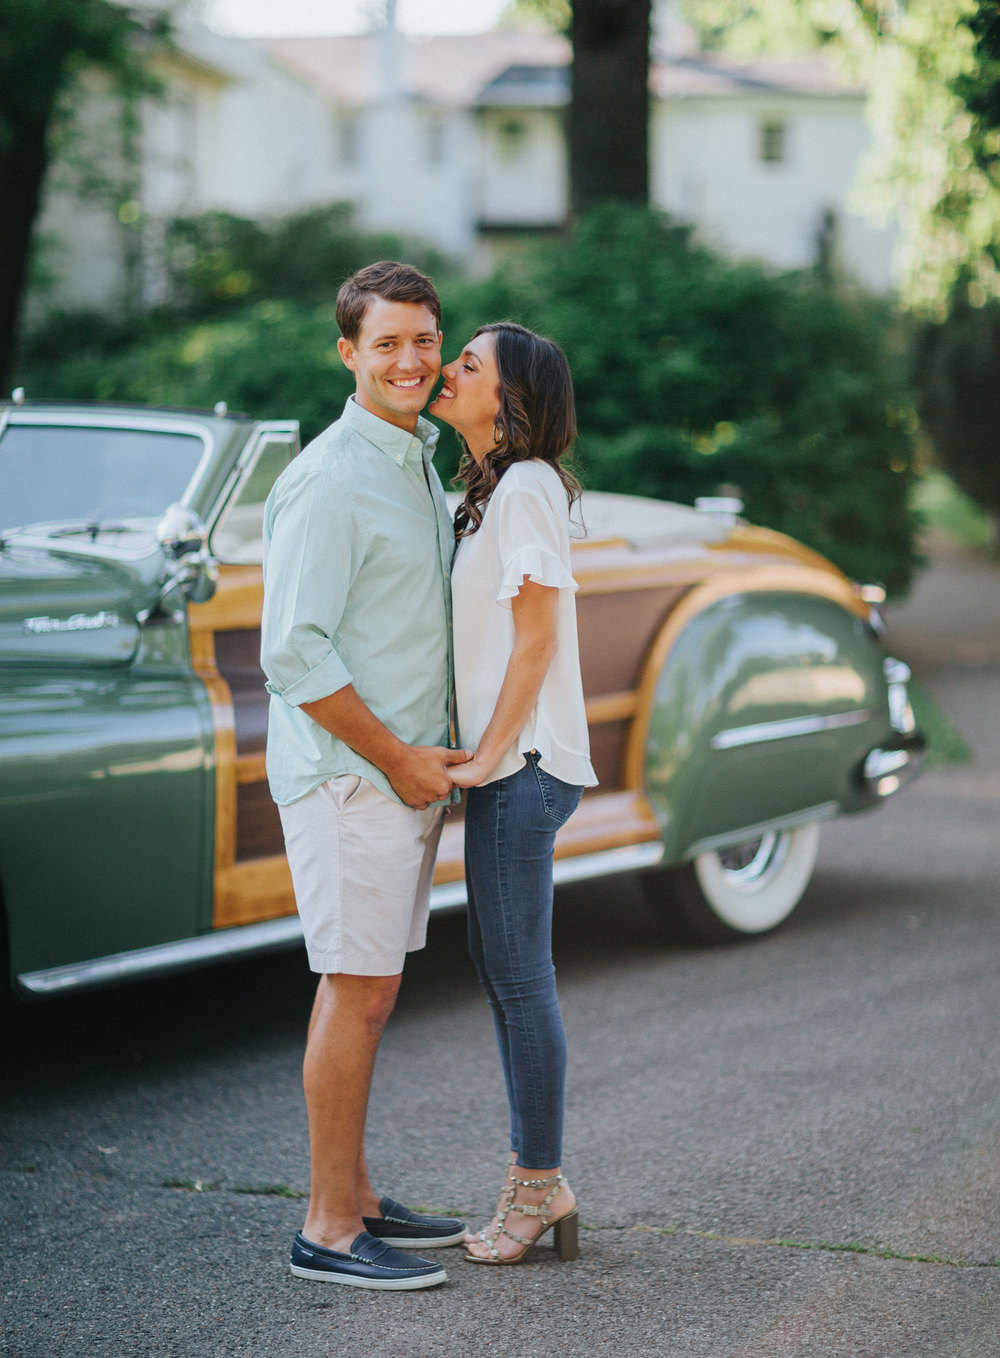 louisville-engagement-photographer-09.JPG